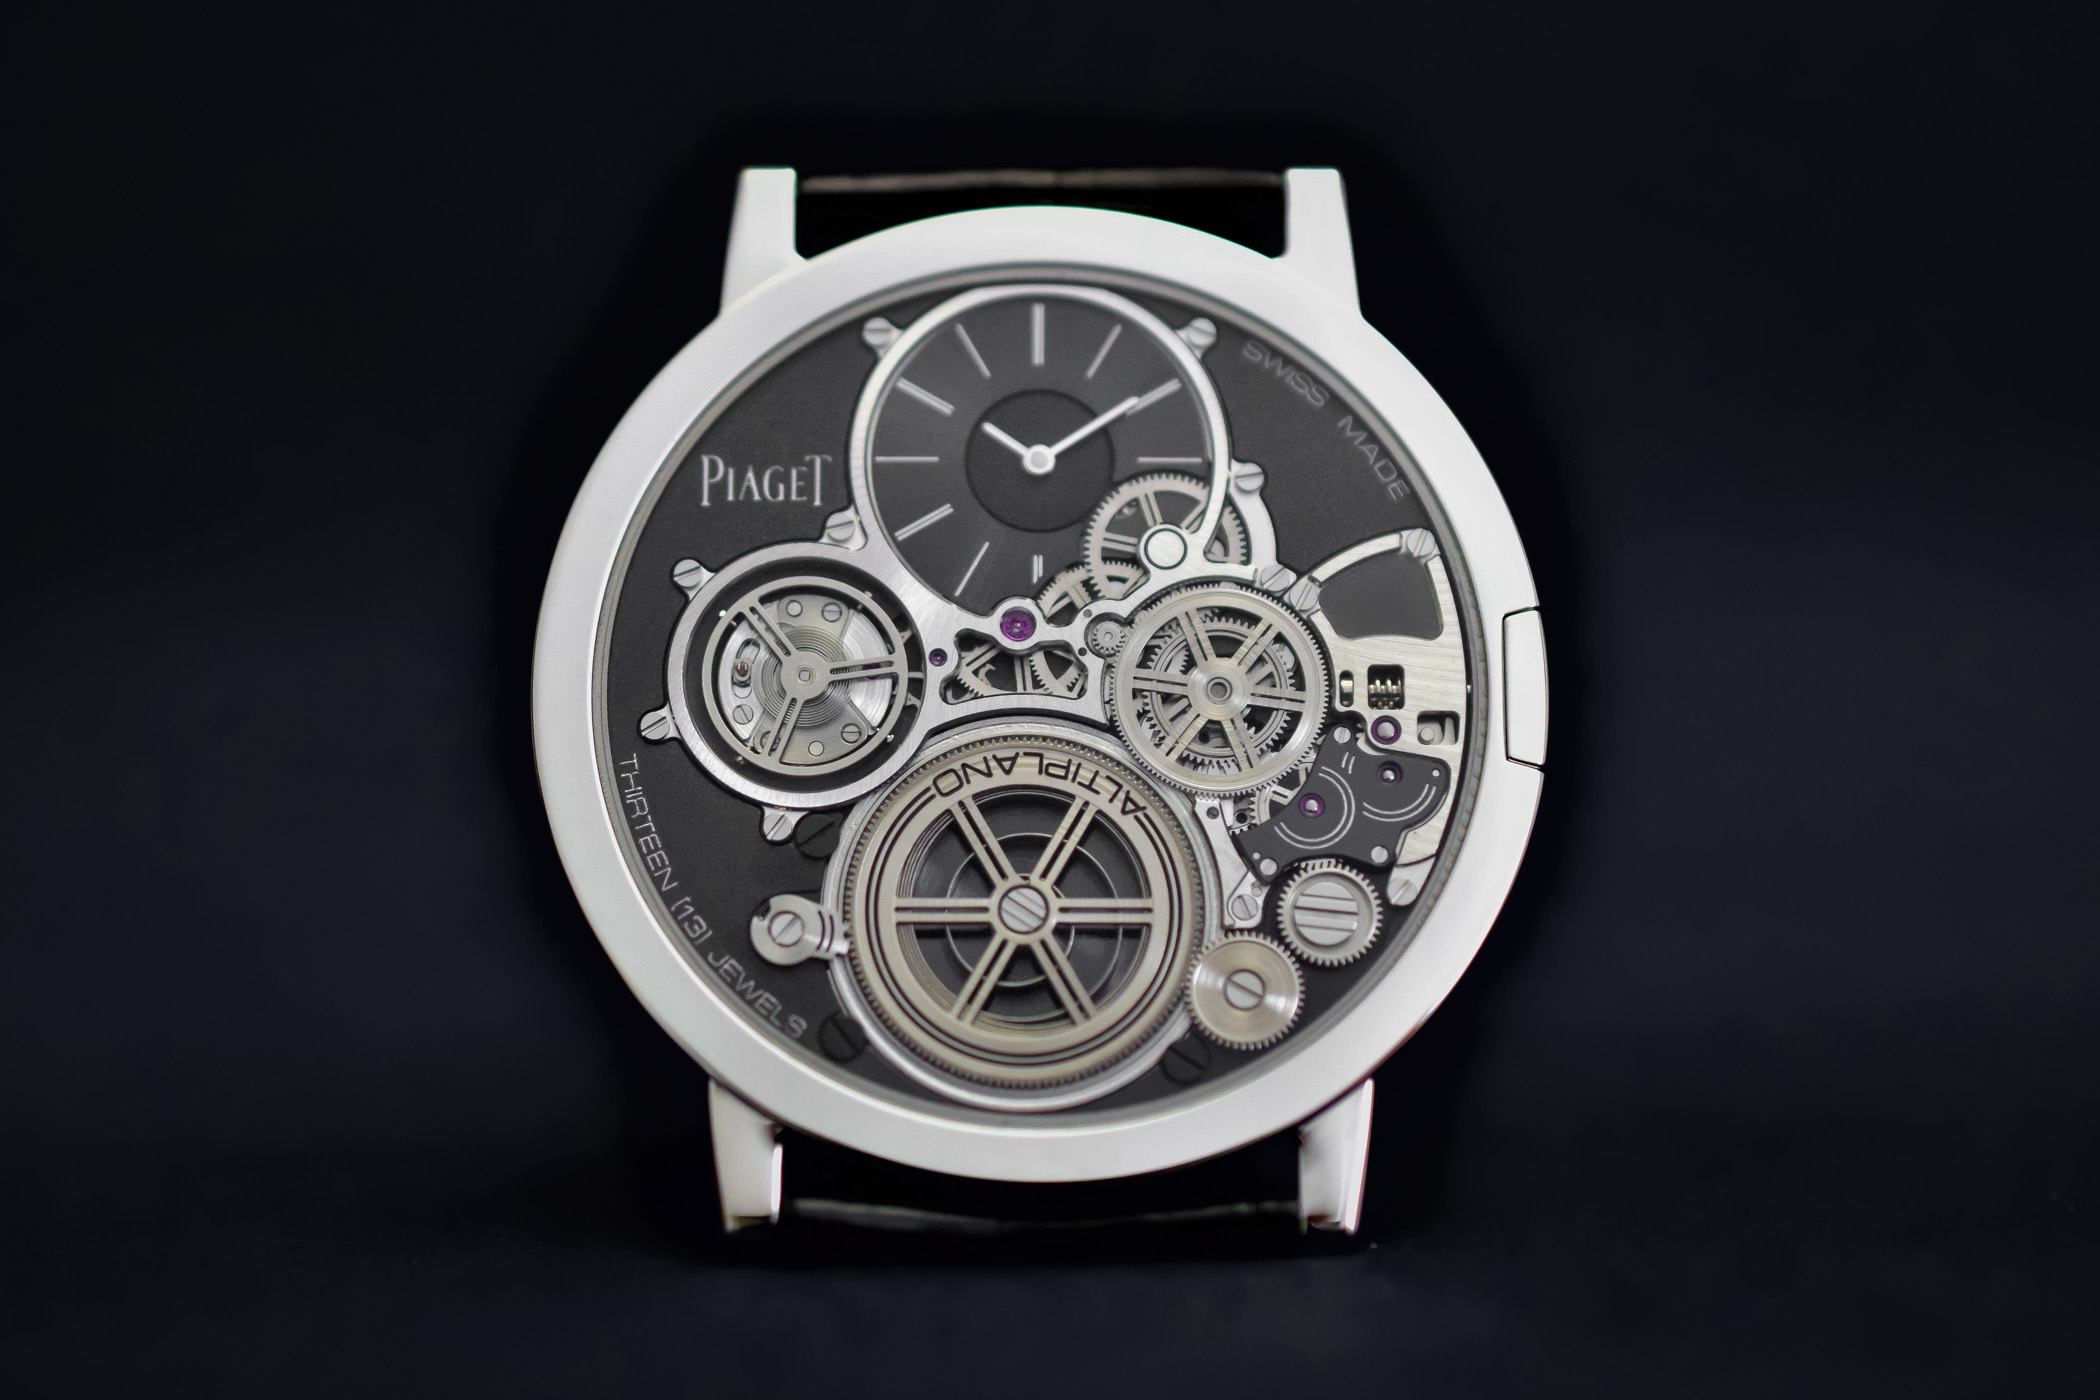 Piaget Altiplano Ultimate Concept - thinnest mechanical watch in the world 2mm